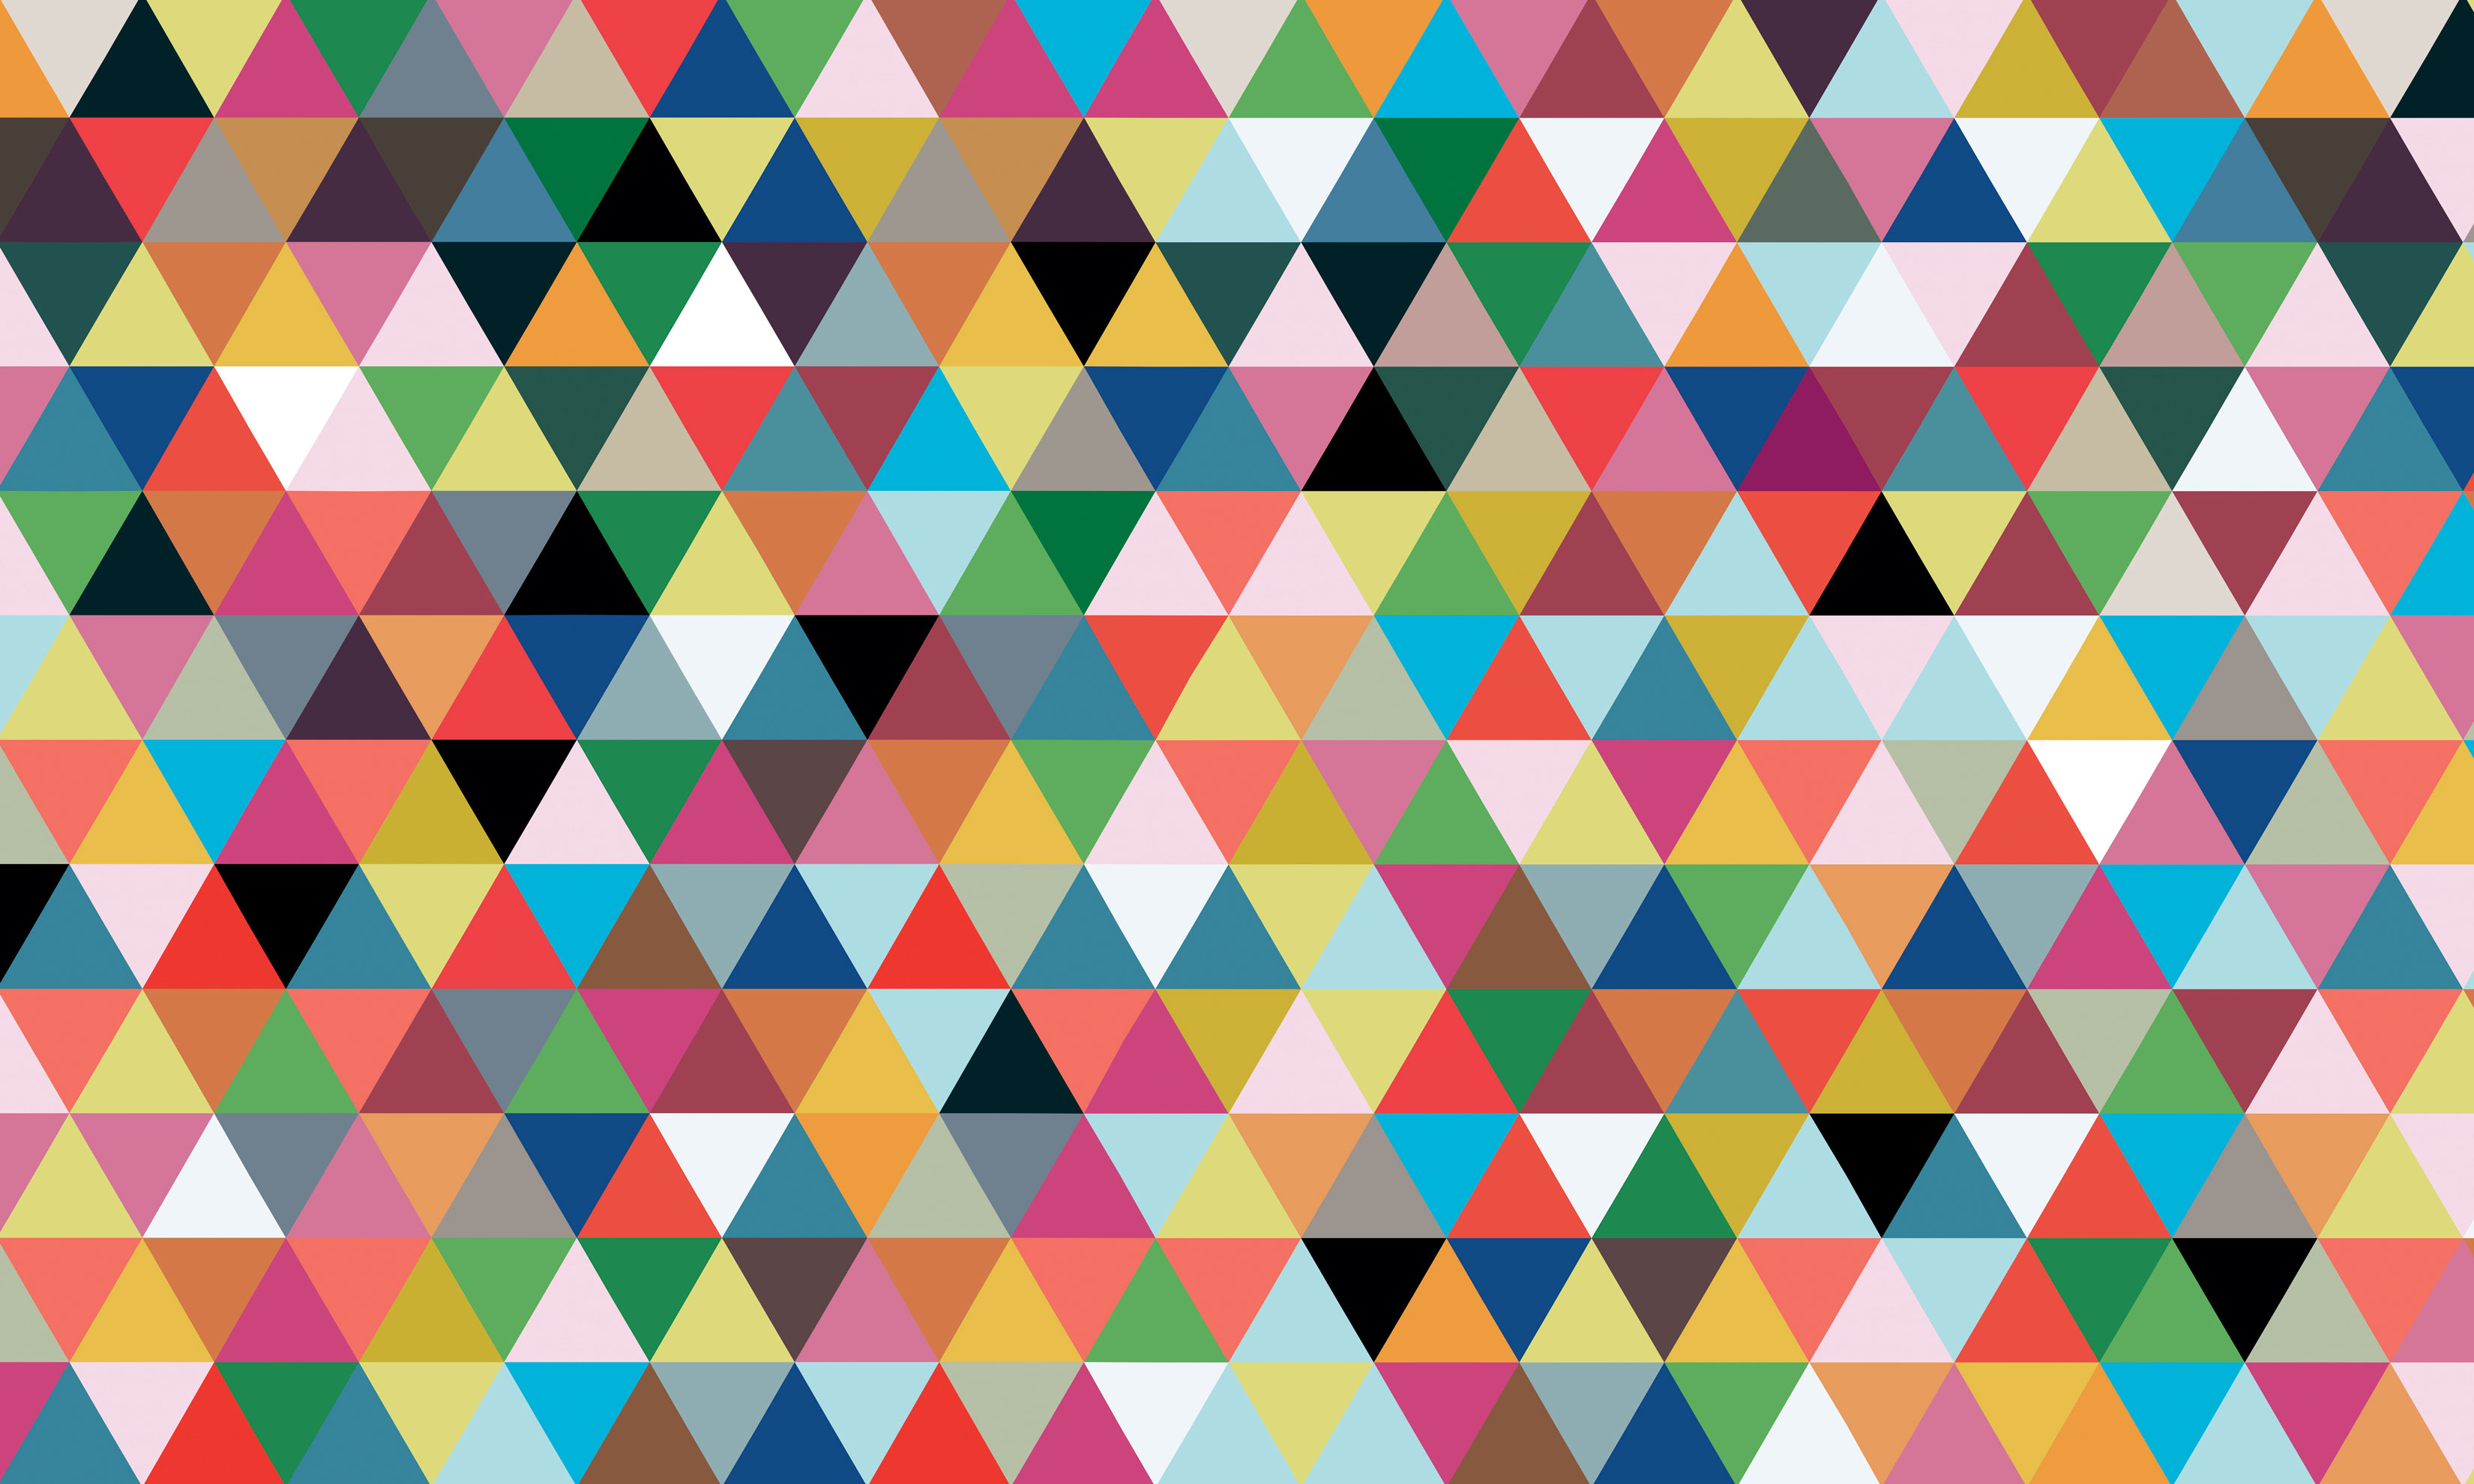 Triangle Geometric Pattern Wallpaper